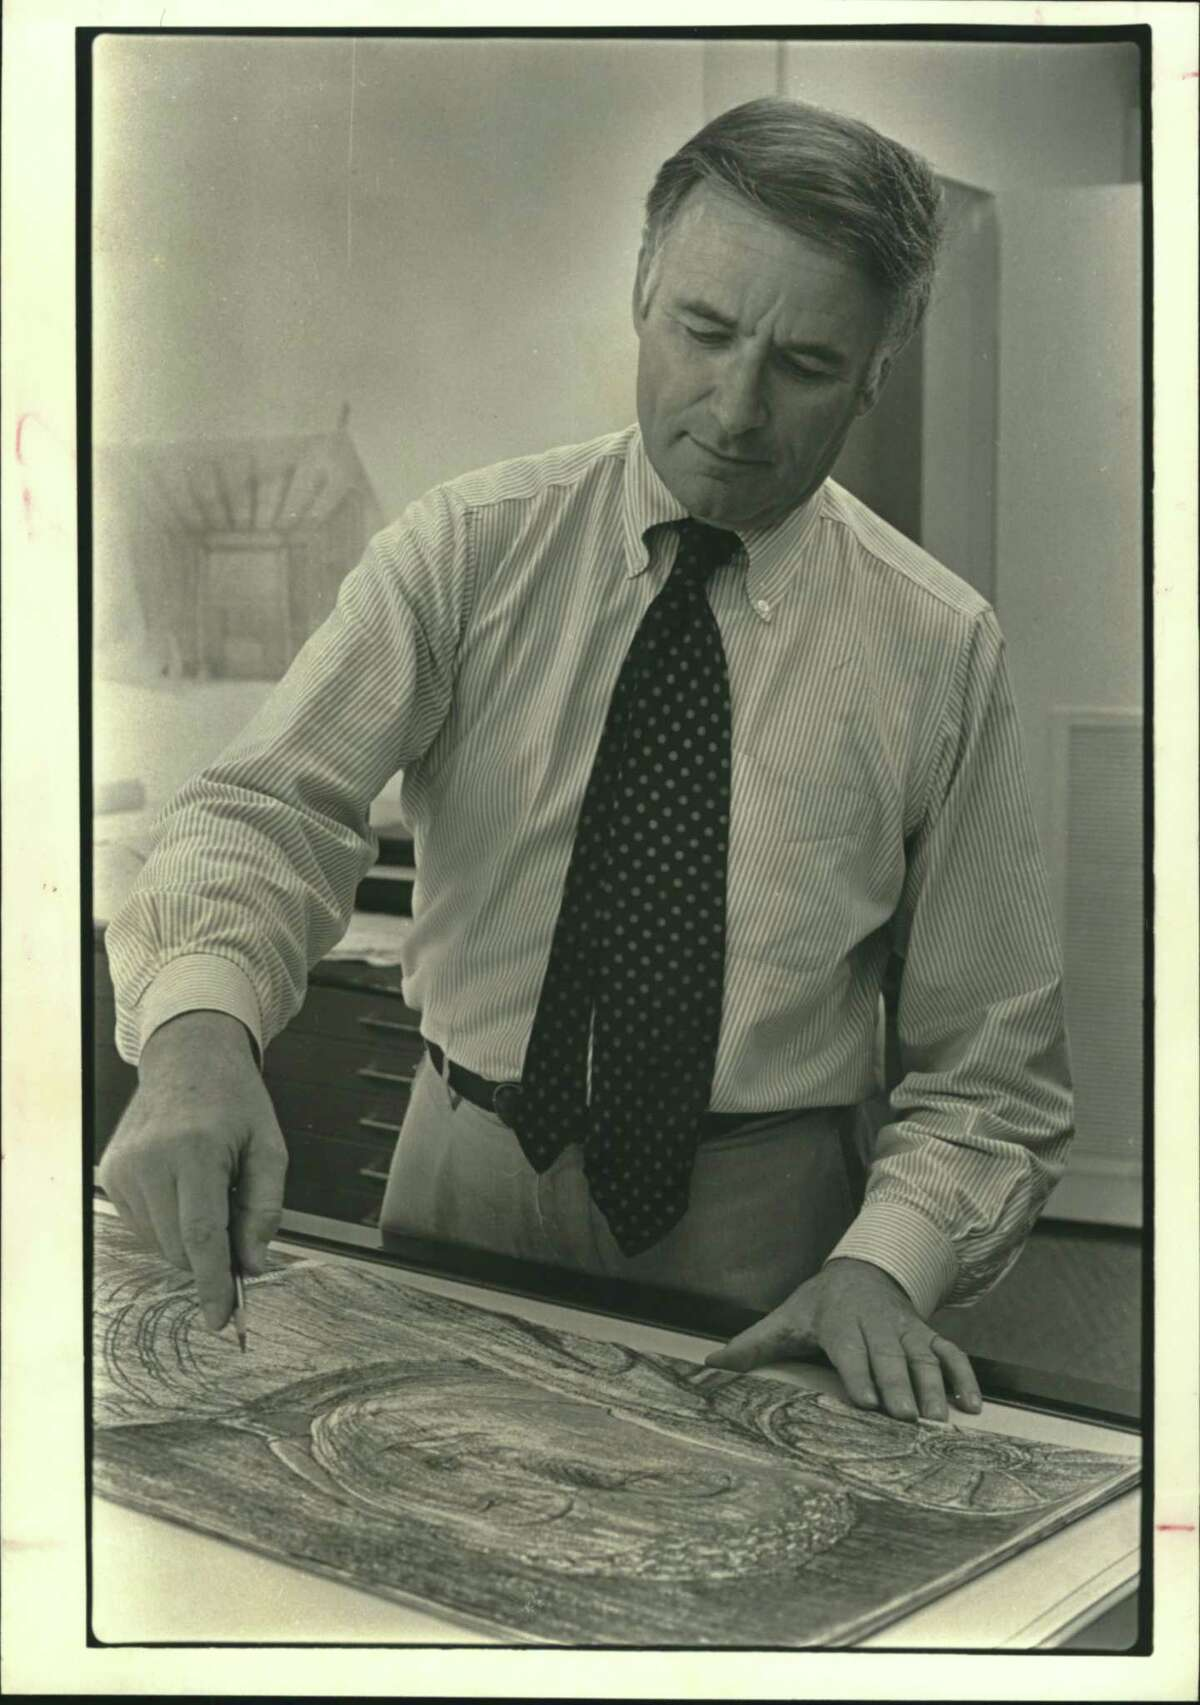 Victor Lundy, architect and professor at the University of Houston, sketches, paints, sculpts and carves stone in addition to designing prize-winning buildings.